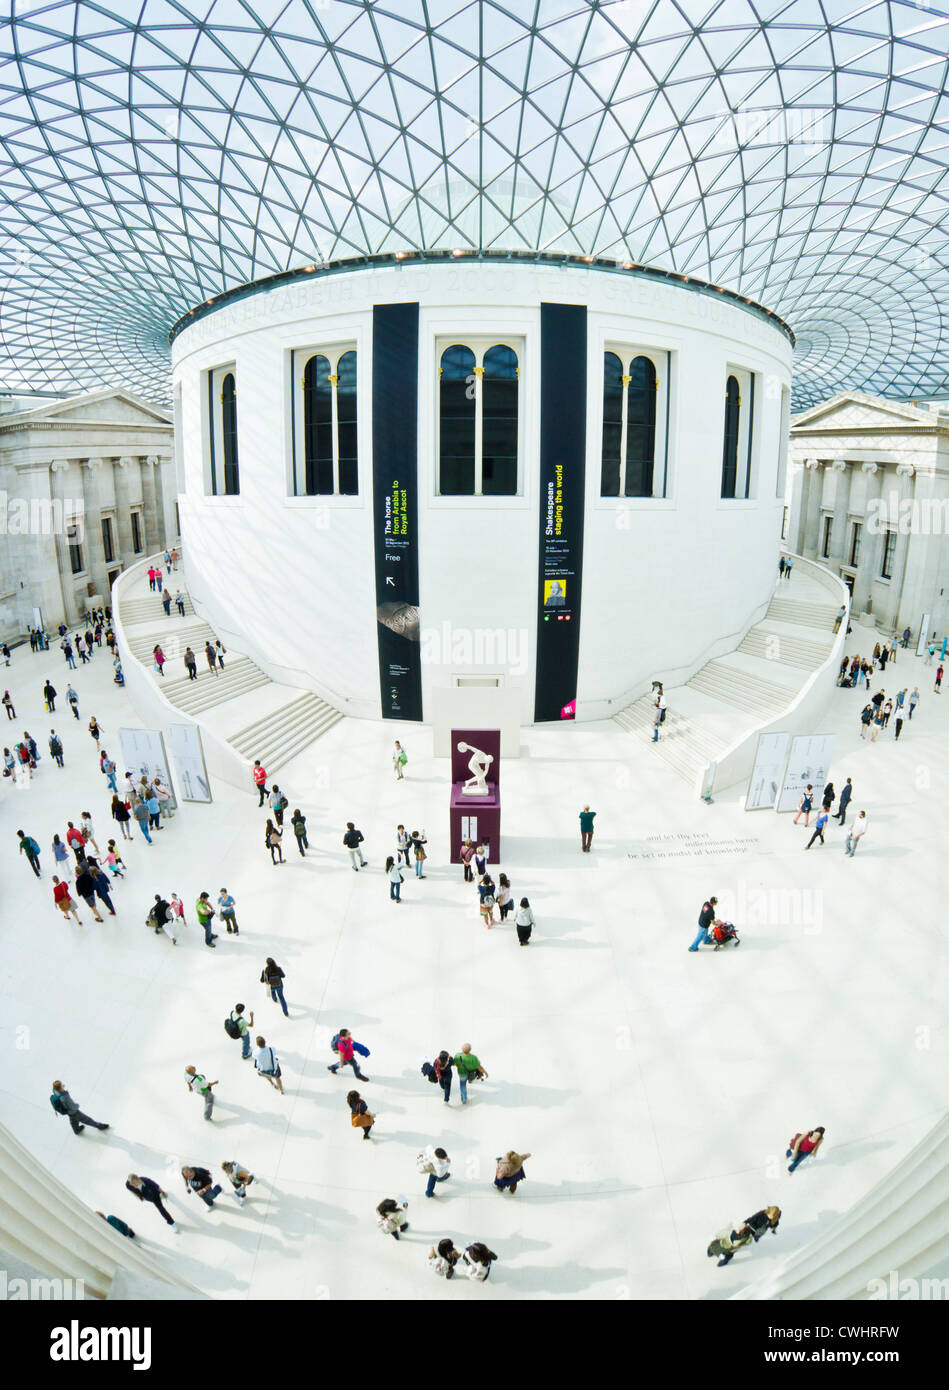 British Museum Londres 'Queen Elizabeth II Great Court' toit en verre conçu par l'architecte Norman Photo Stock